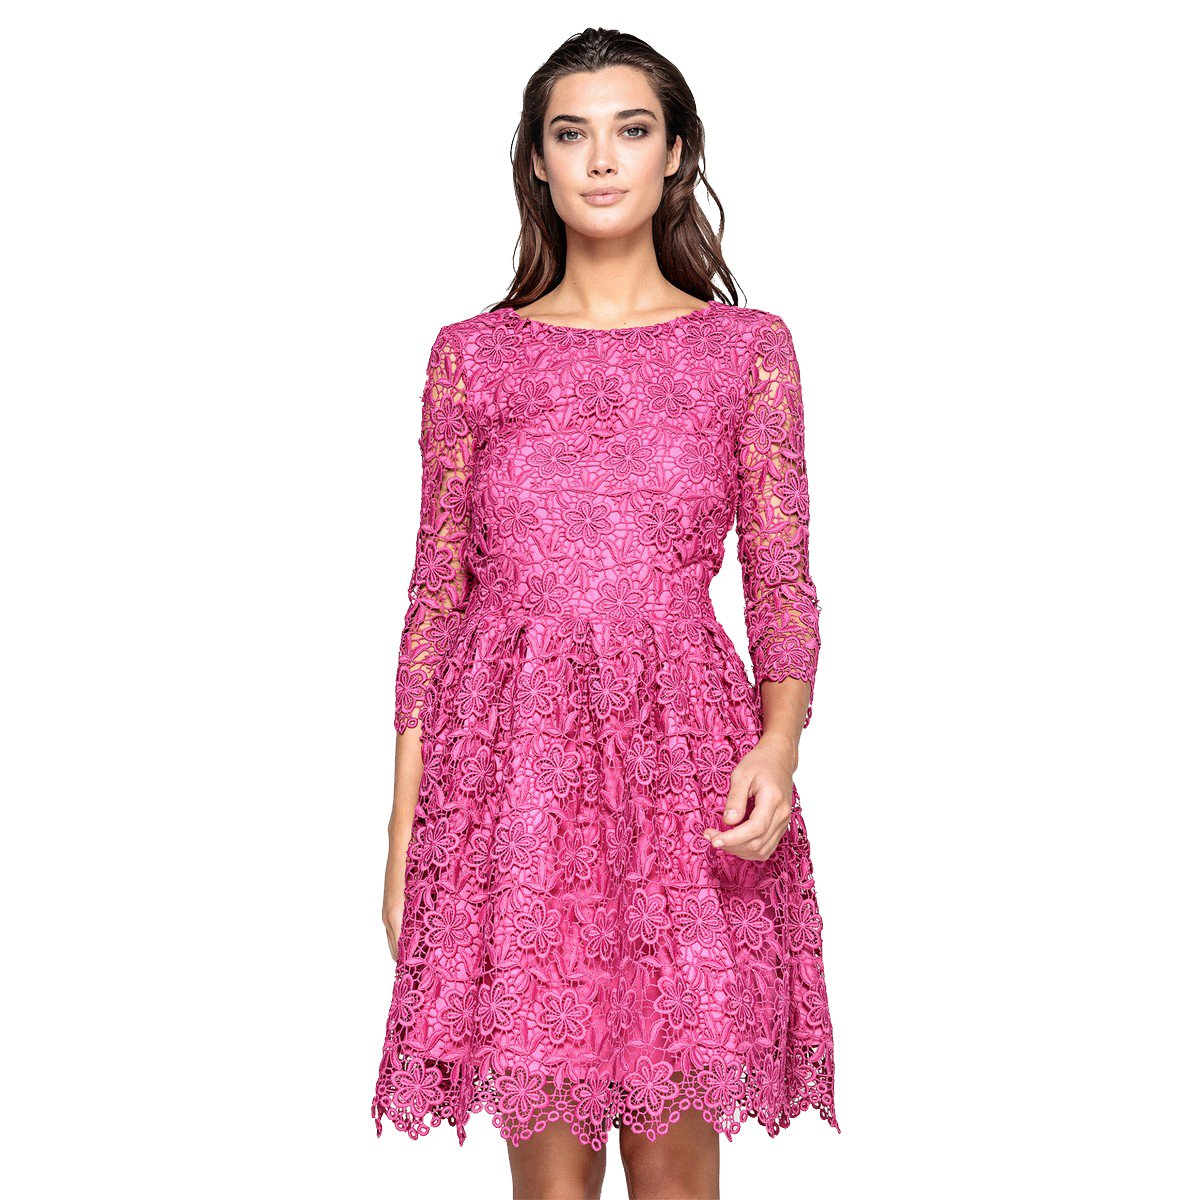 c5bdd2739a4e La Redoute Womens Guipure Lace Skater Dress Pink Size US 8 - FR 38 at  Amazon Women s Clothing store